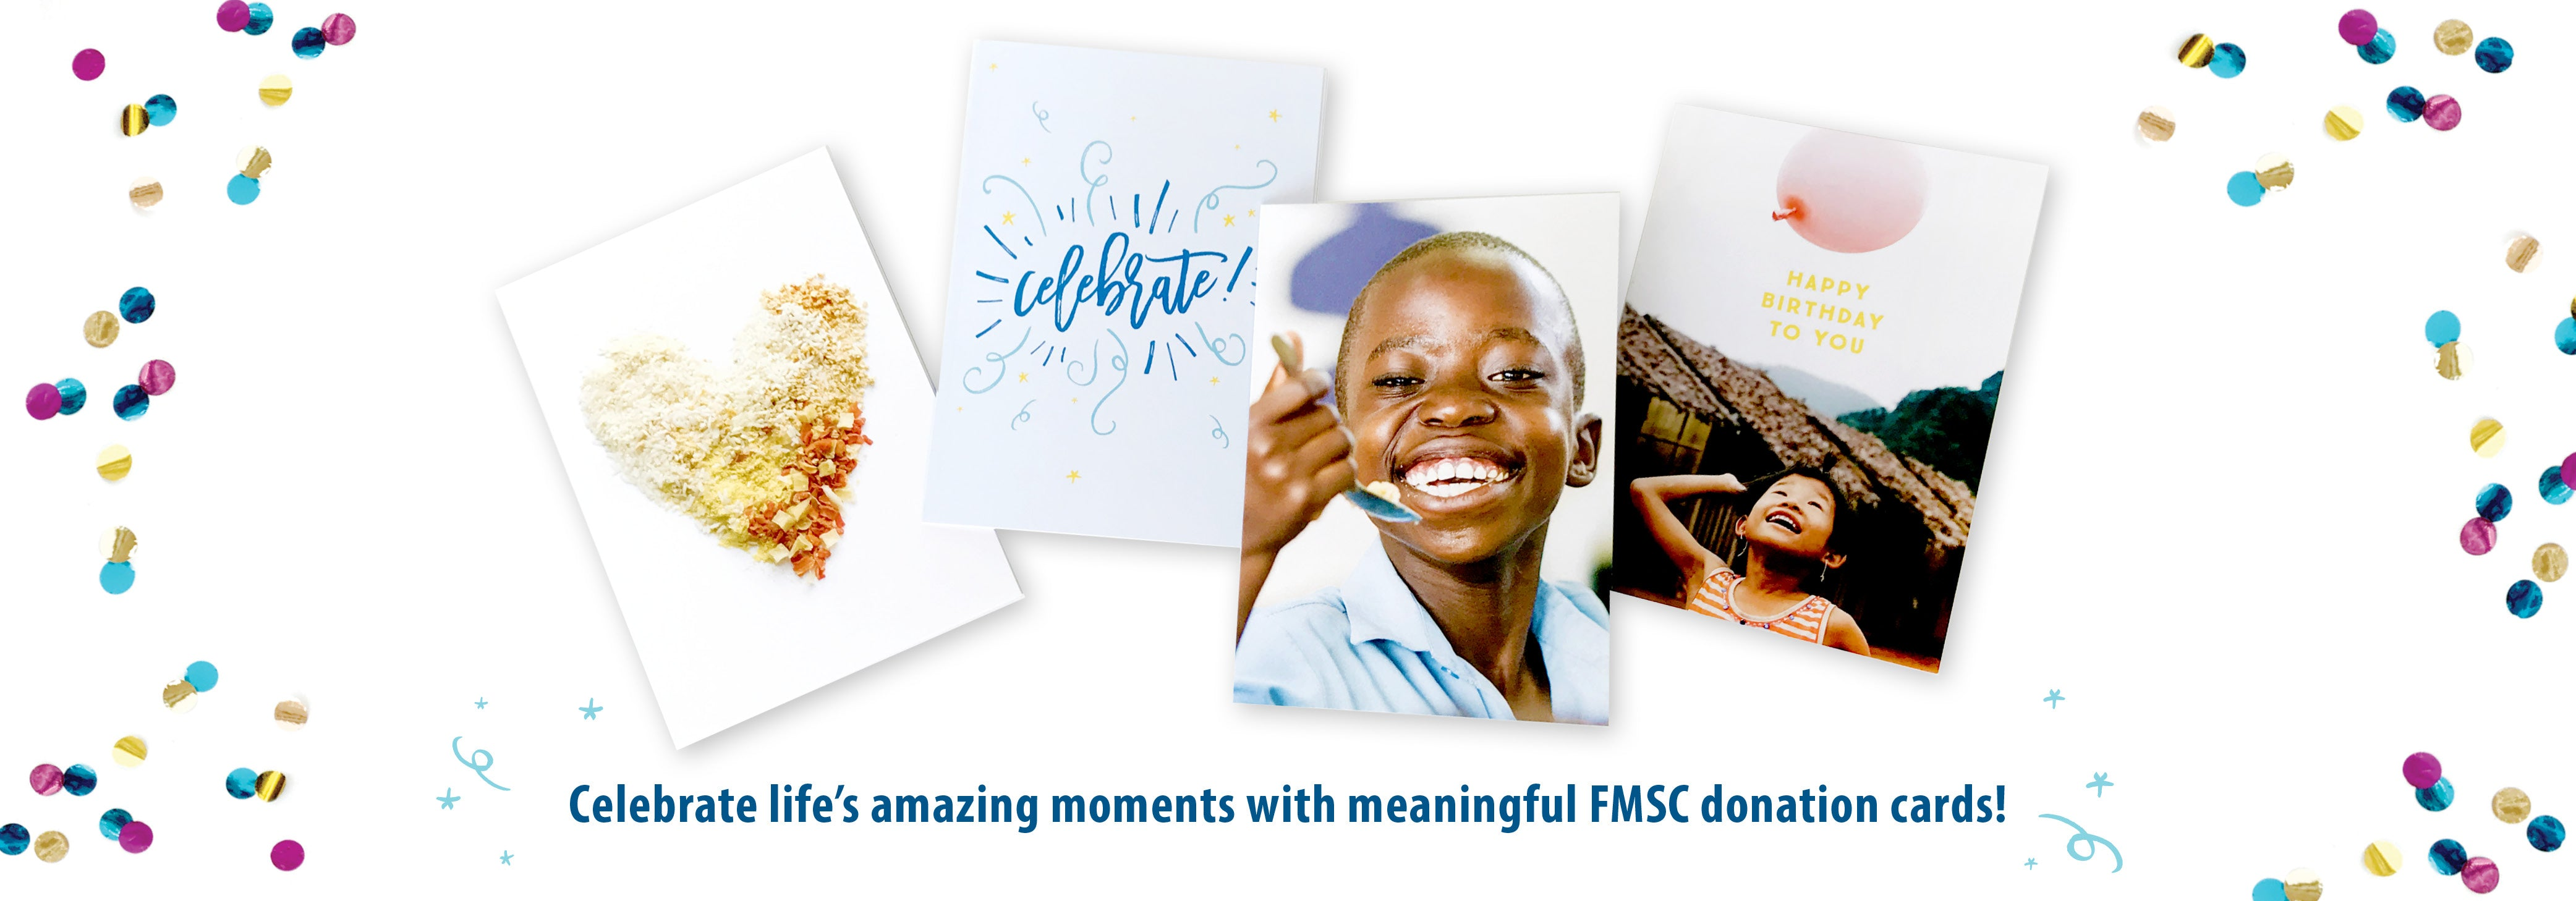 Celebrate: Give a card. Feed a child.